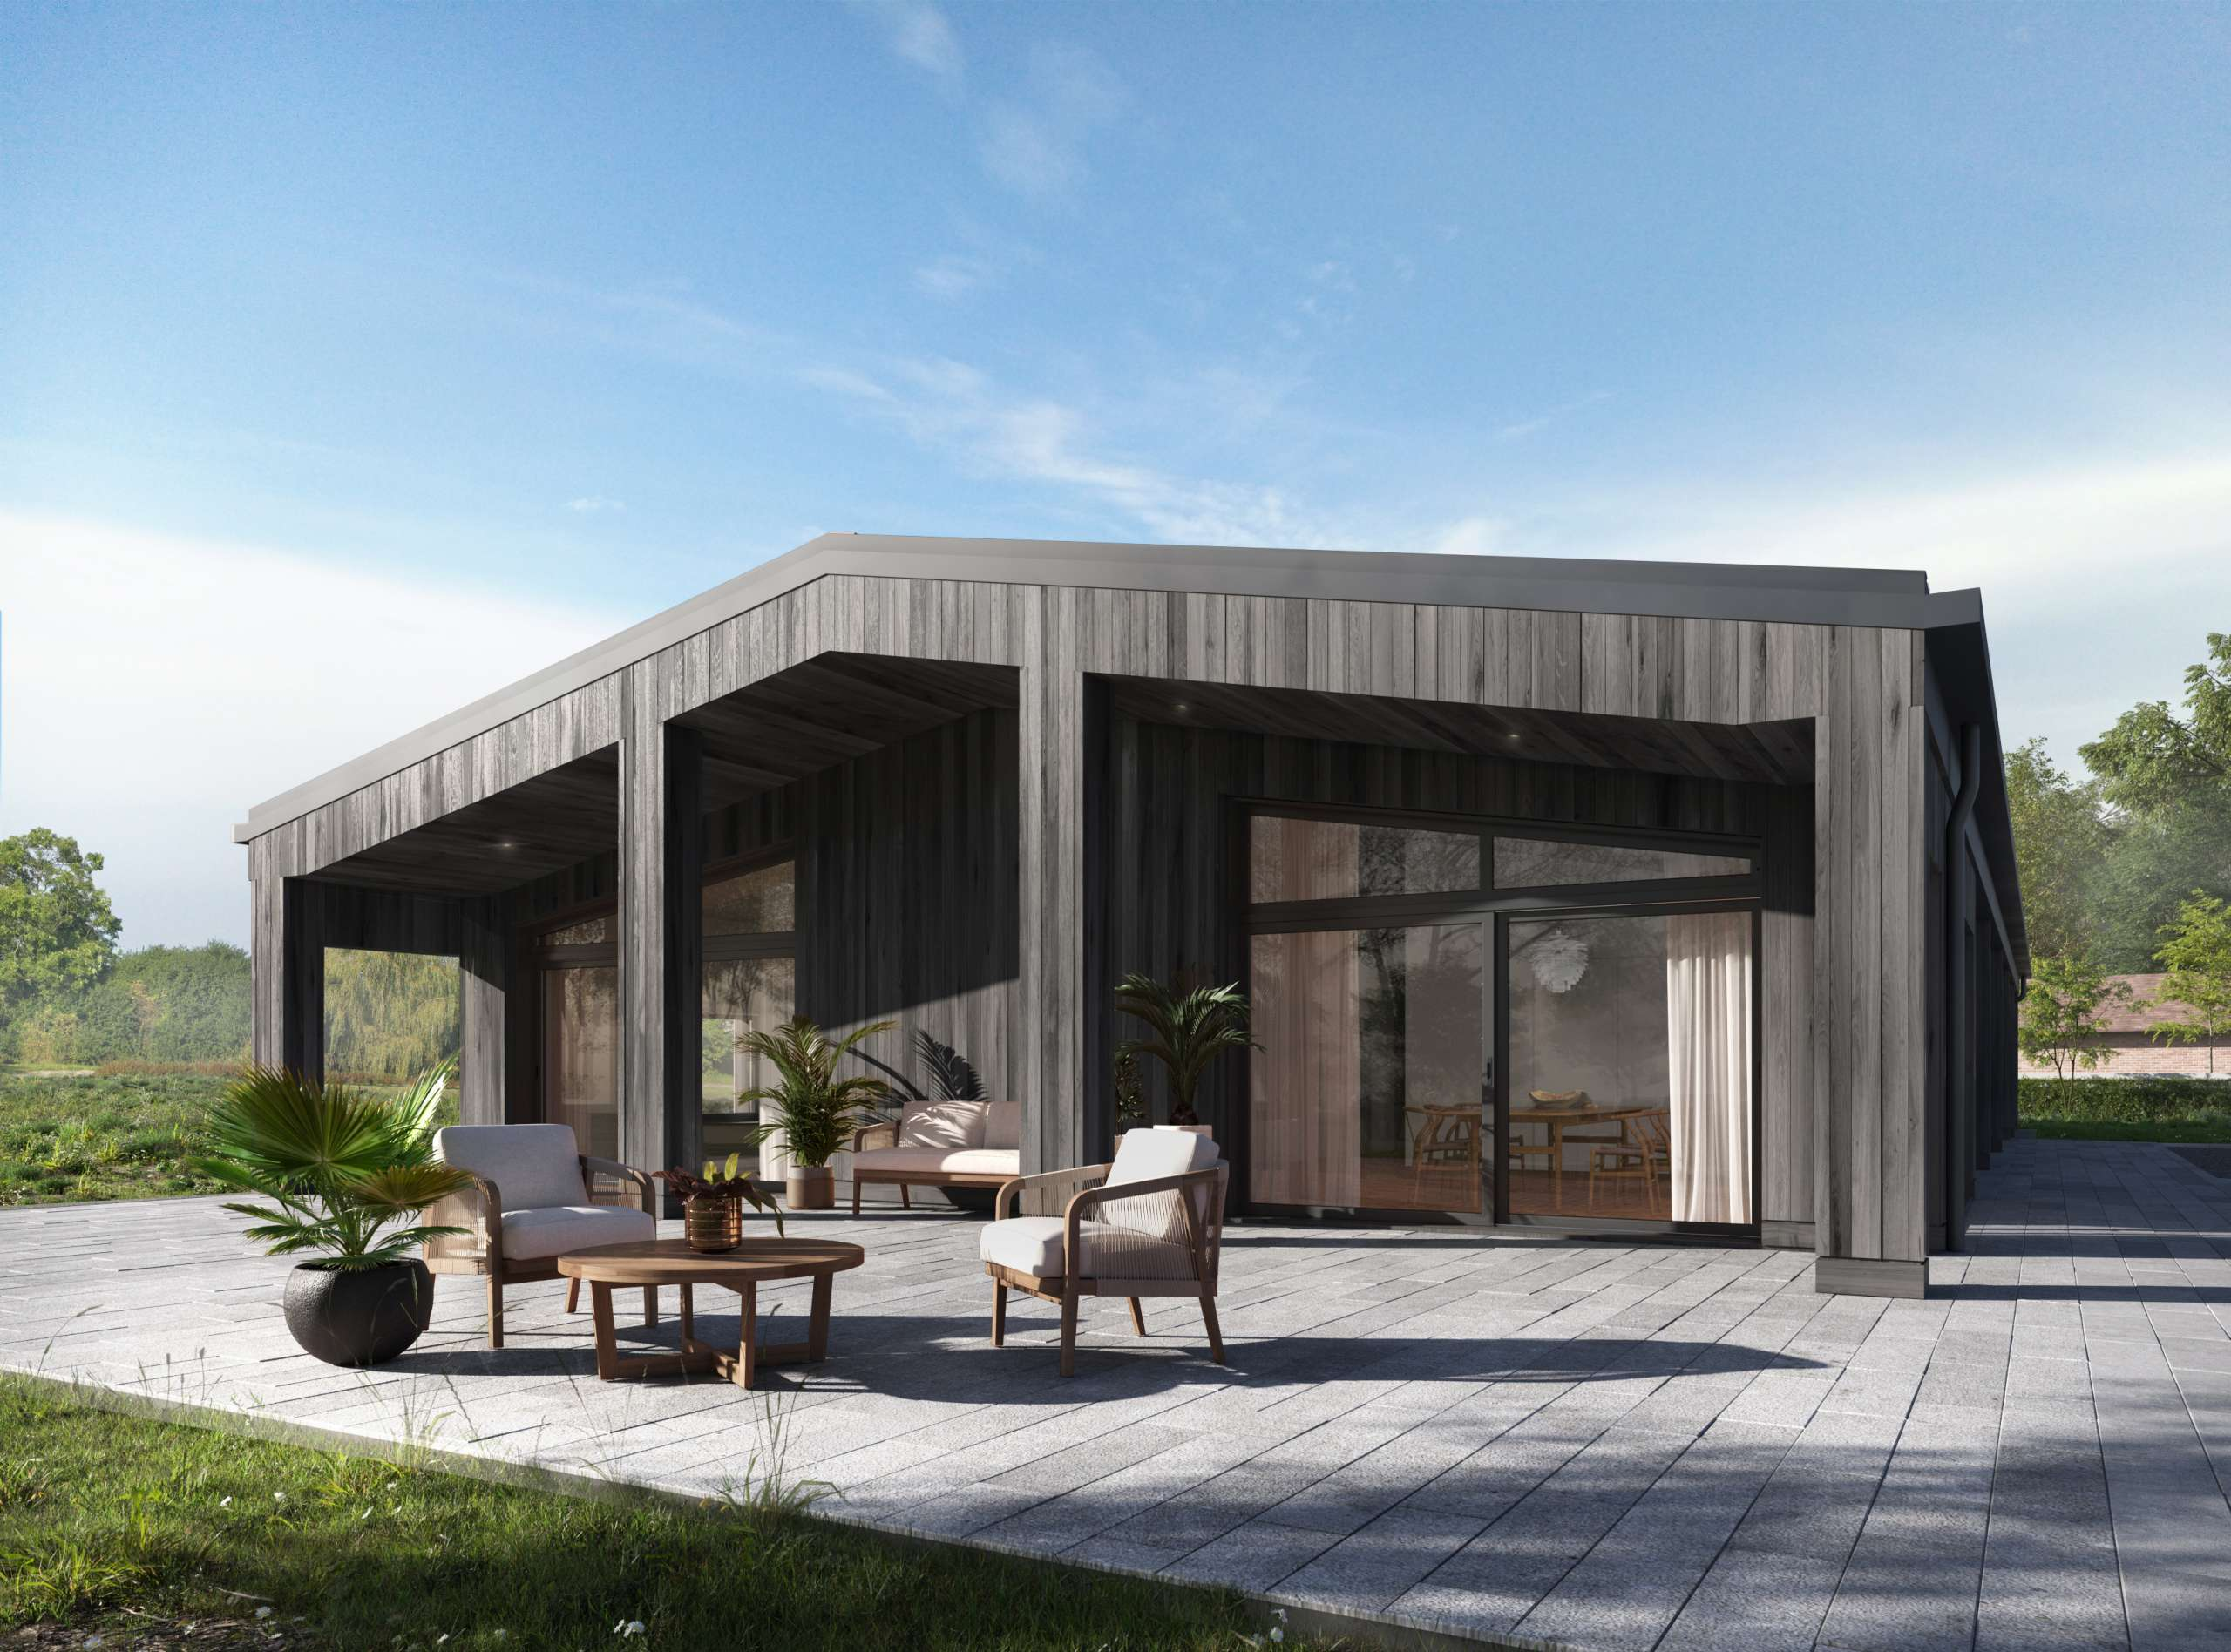 Passive House barn conversion with timber cladding and outdoor patio dining